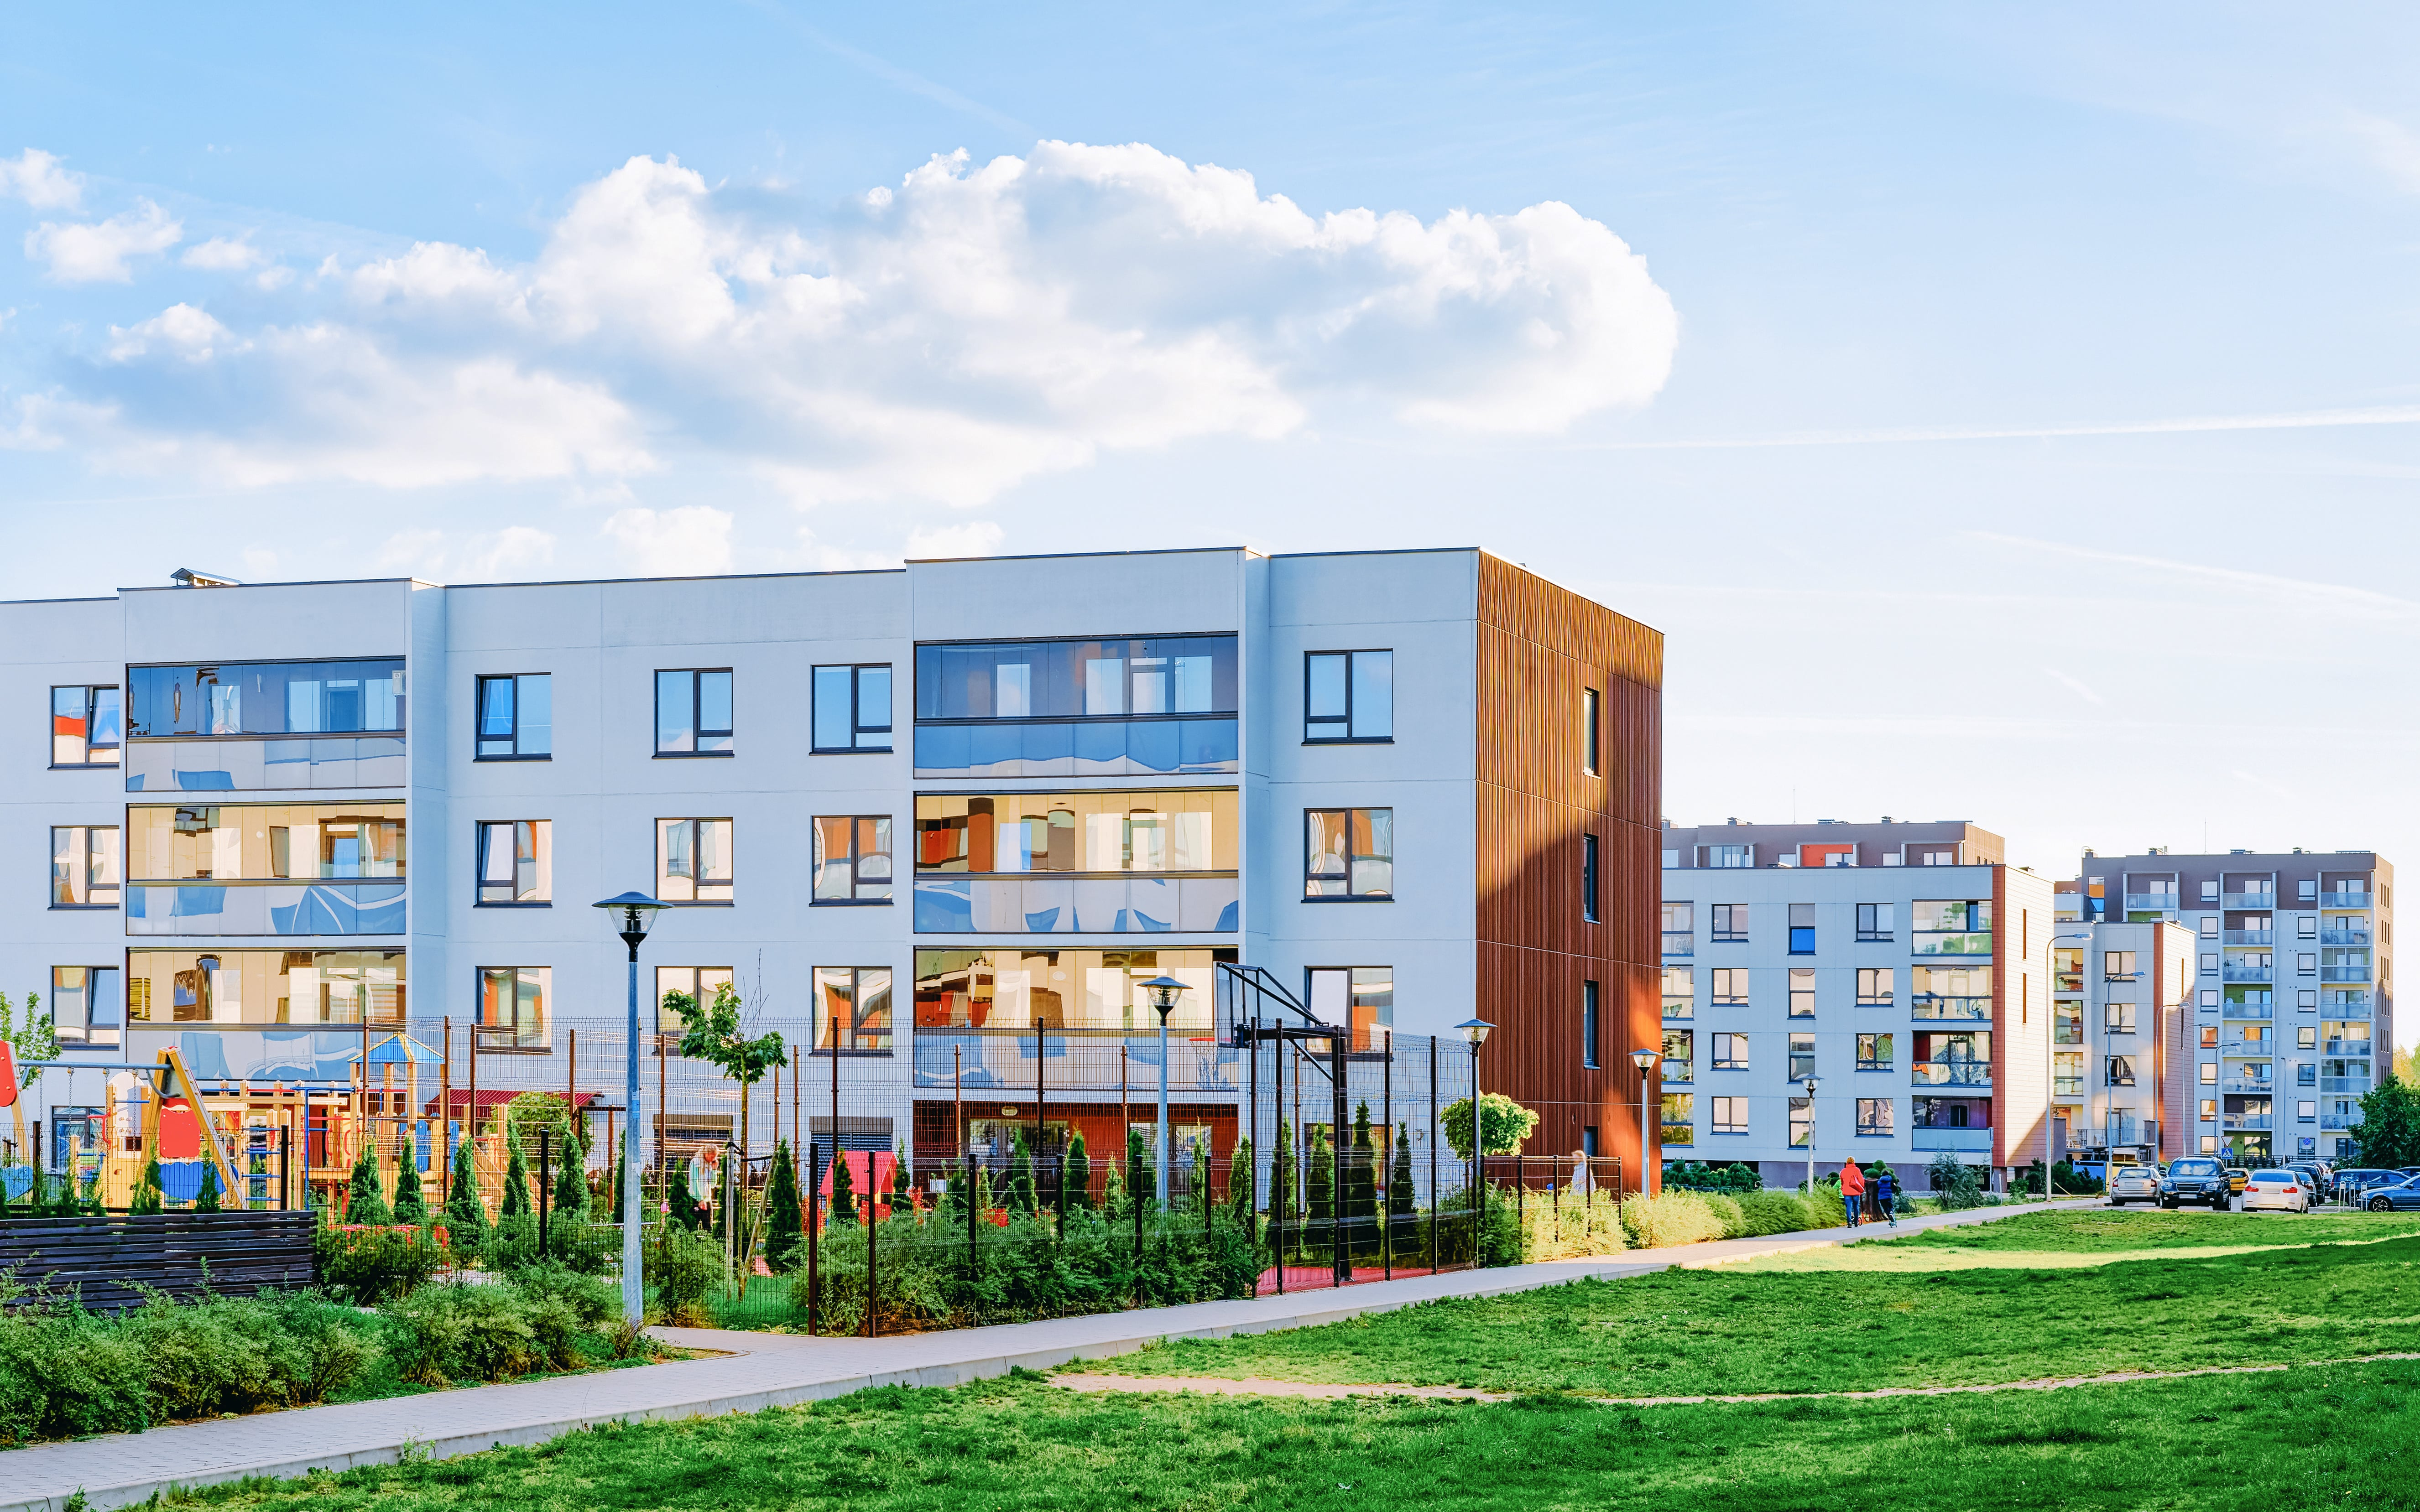 How to rent an apartment in the U.S.